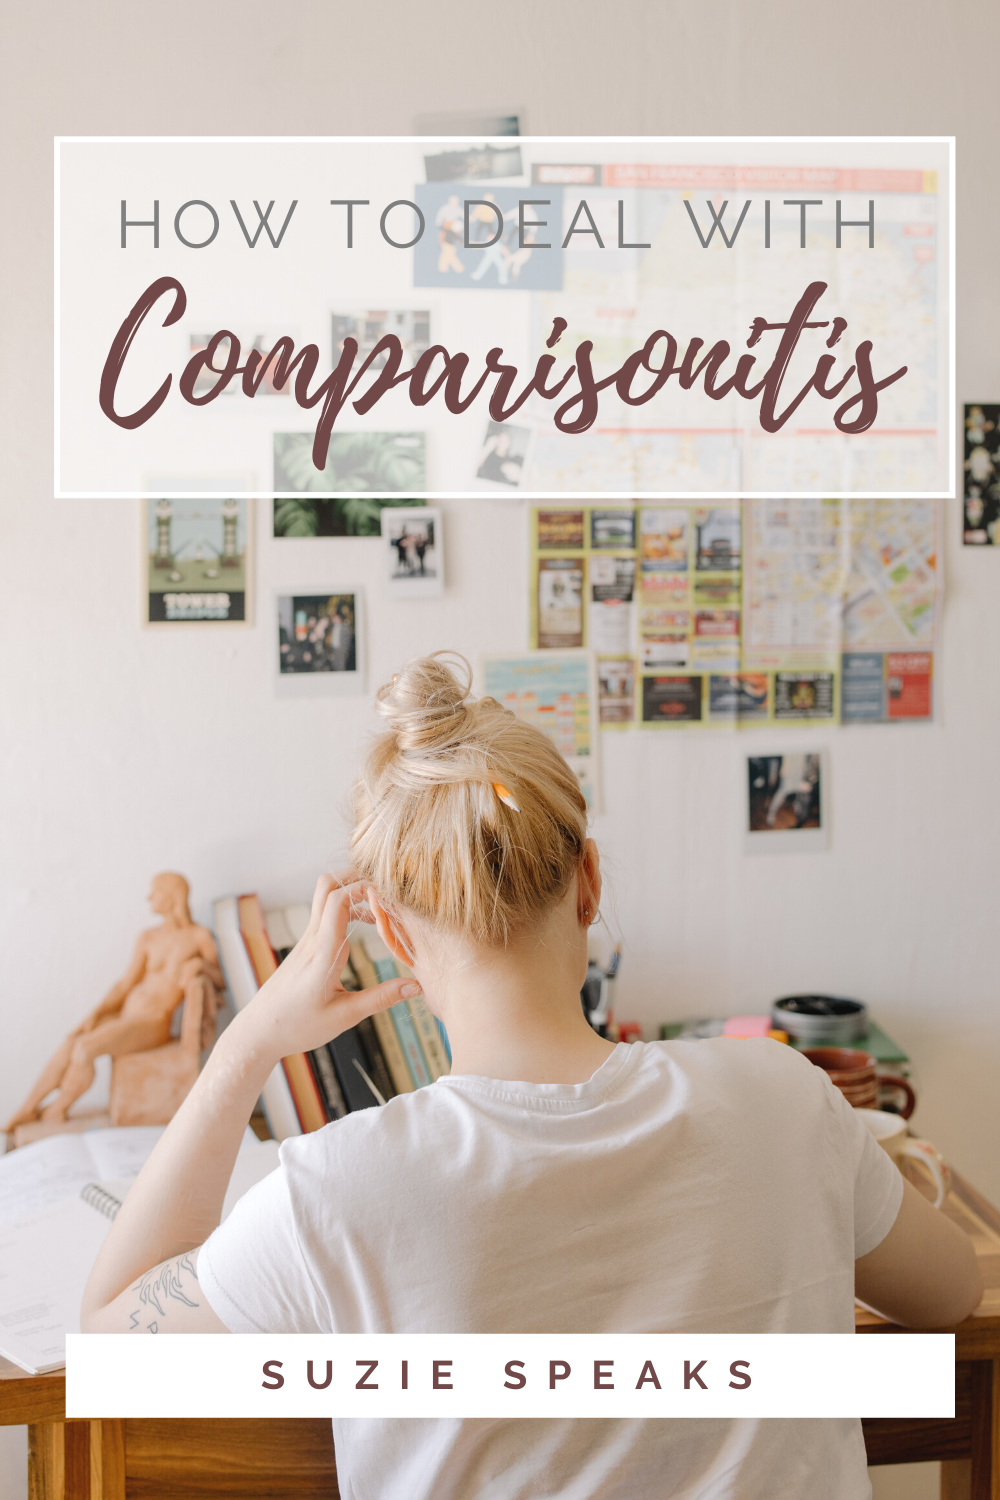 How to Deal with Comparisonitis